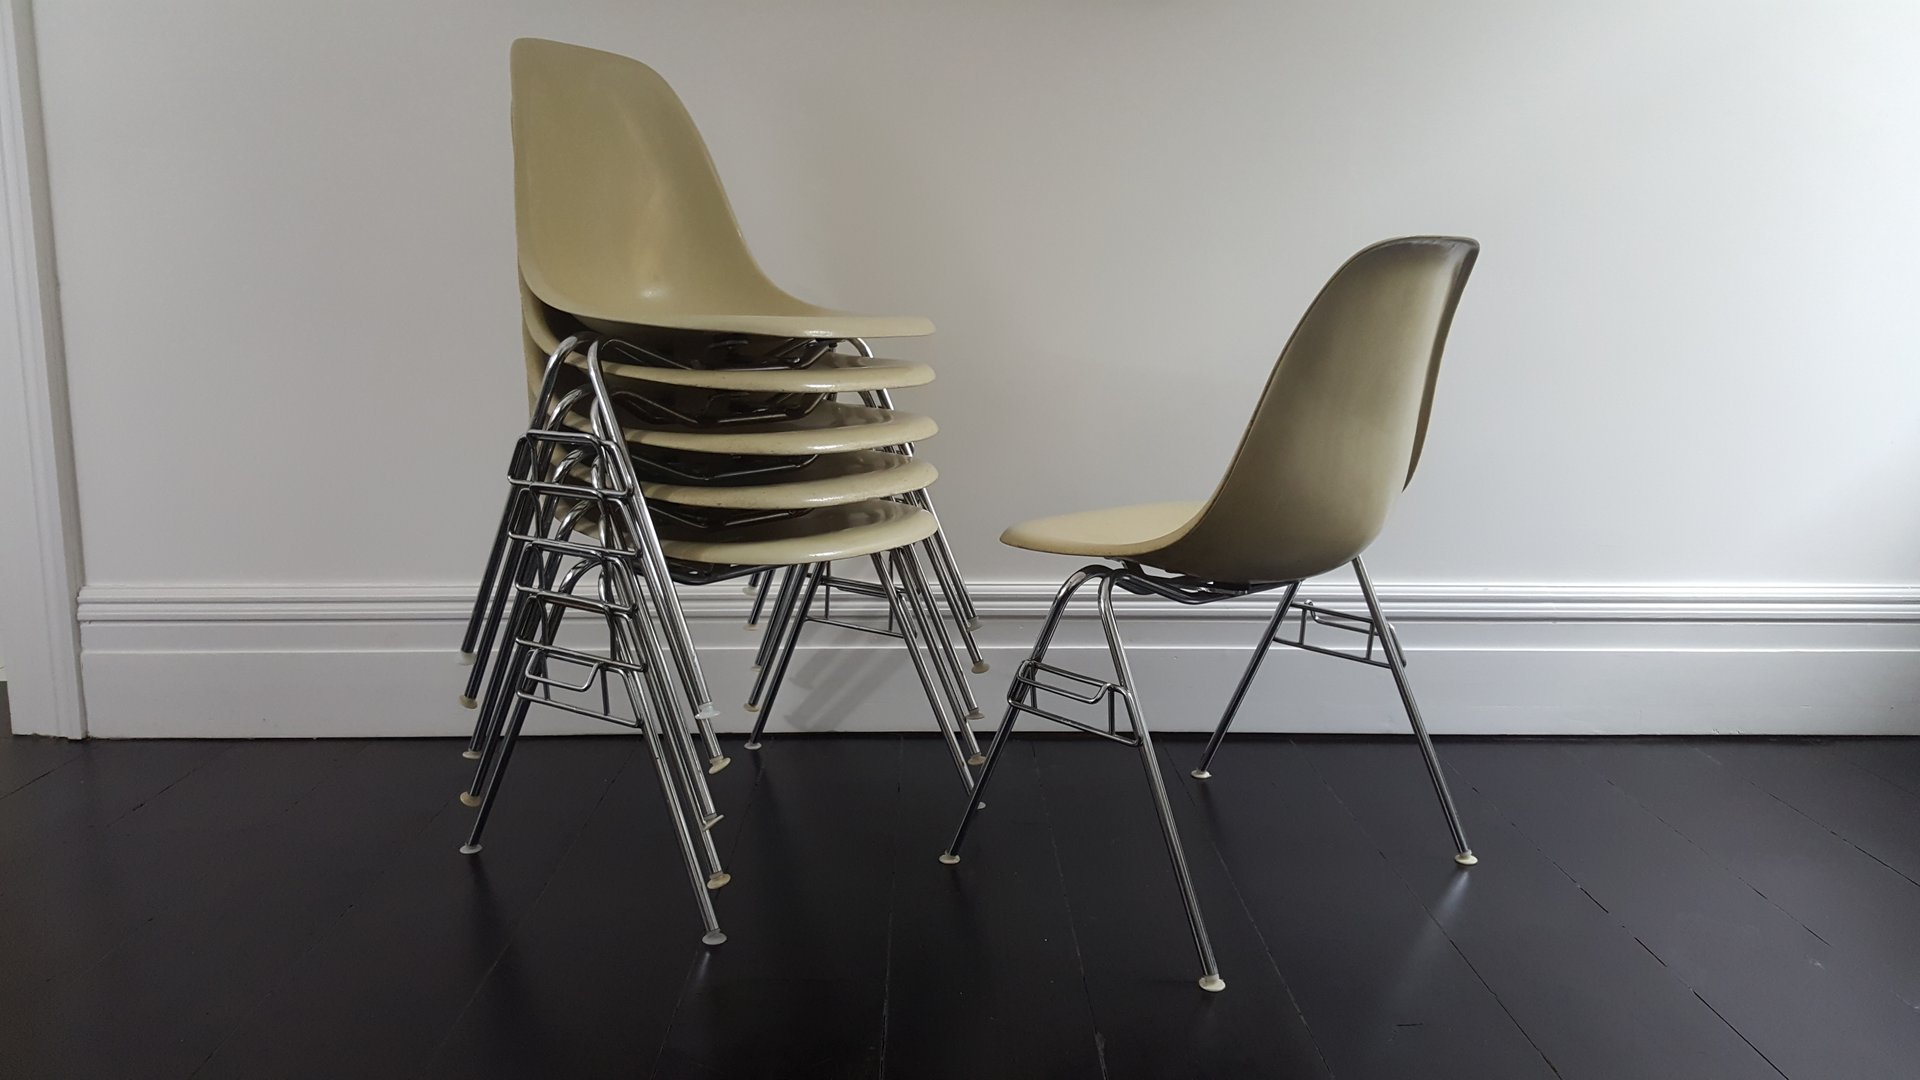 Vintage DSS Fiberglass Shell Chair By Charles U0026 Ray Eames For Herman Miller